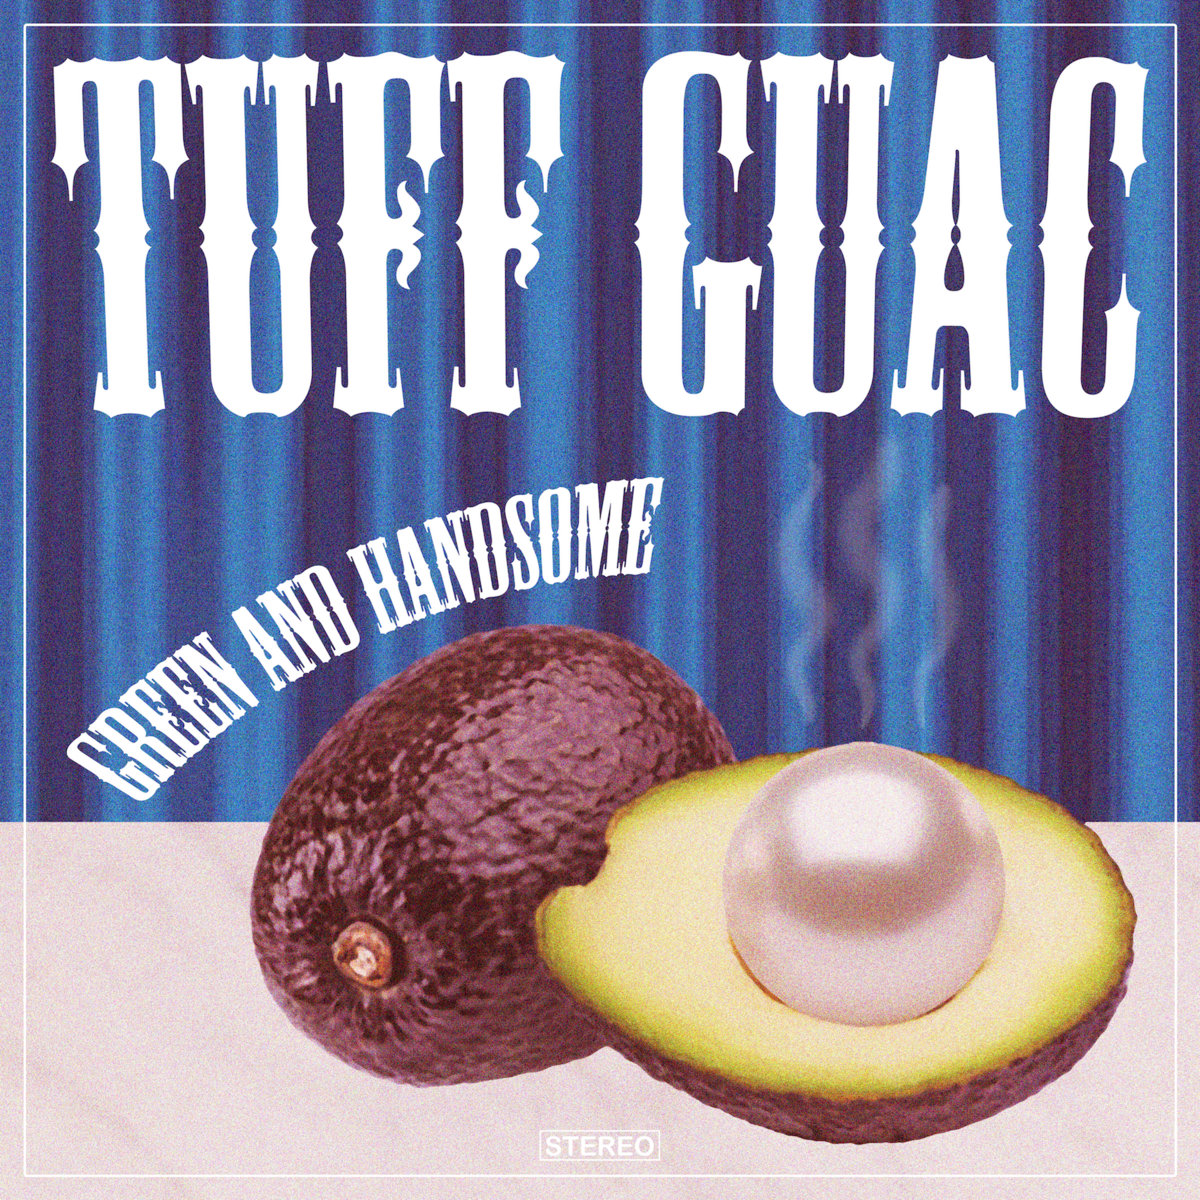 Tuff Guac - Green and Handsome